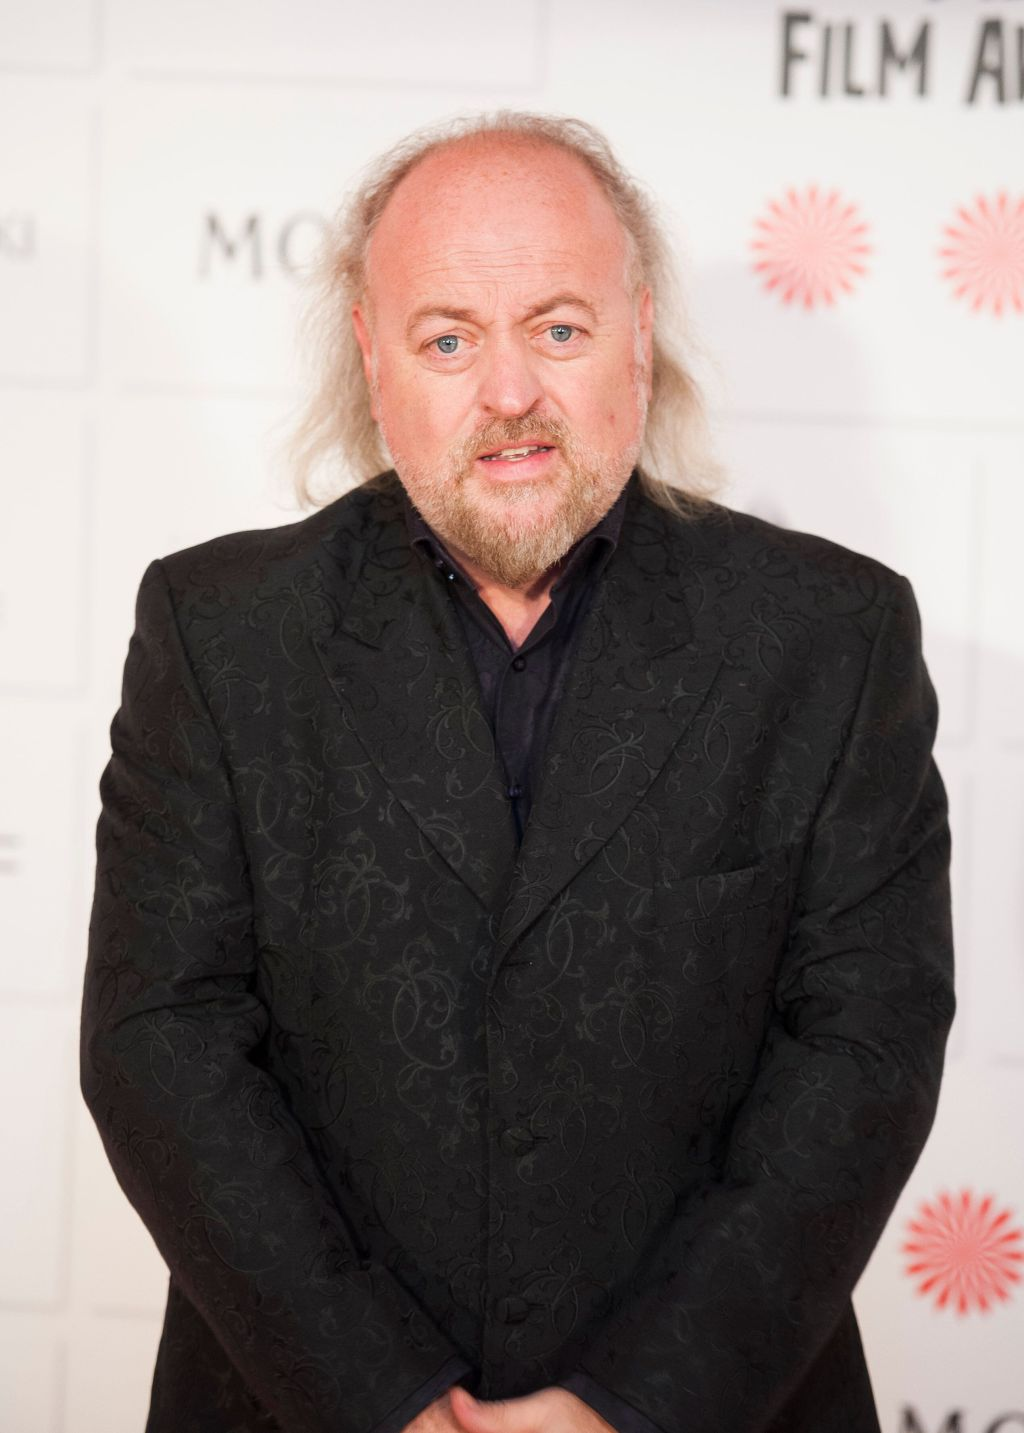 Bill Bailey Confirmed For Strictly Come Dancing